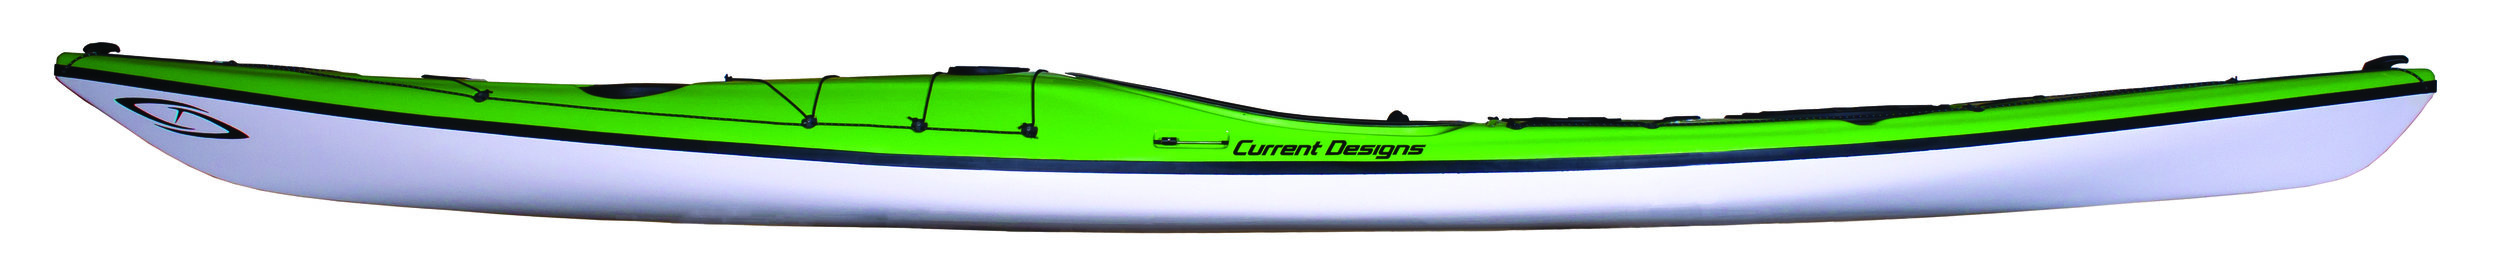 """Prana:  A collaborative effort between Danish designer Jesper Kromann-Andersen and Current Designs award-winning team, the new Prana touring kayak is as much at home in surf and rock gardening as it is to crossing a mirror-like bay. Length: 17' 0"""" Width: 21.00""""   In stock Prana colors."""